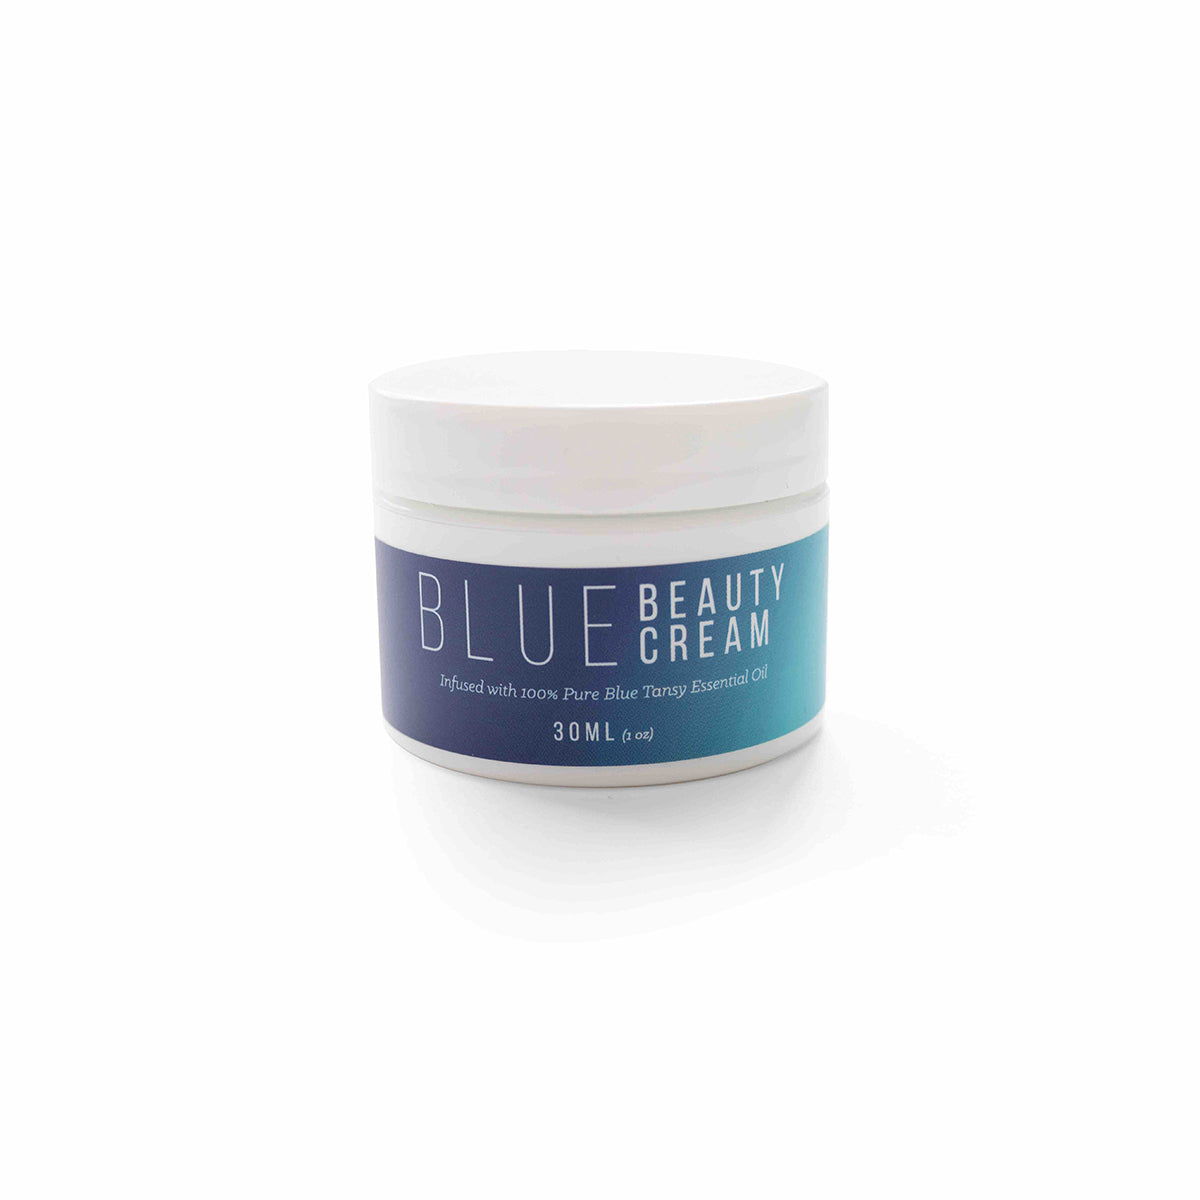 Blue Beauty Cream | Use to Rejuvenate and Moisturize the Skin